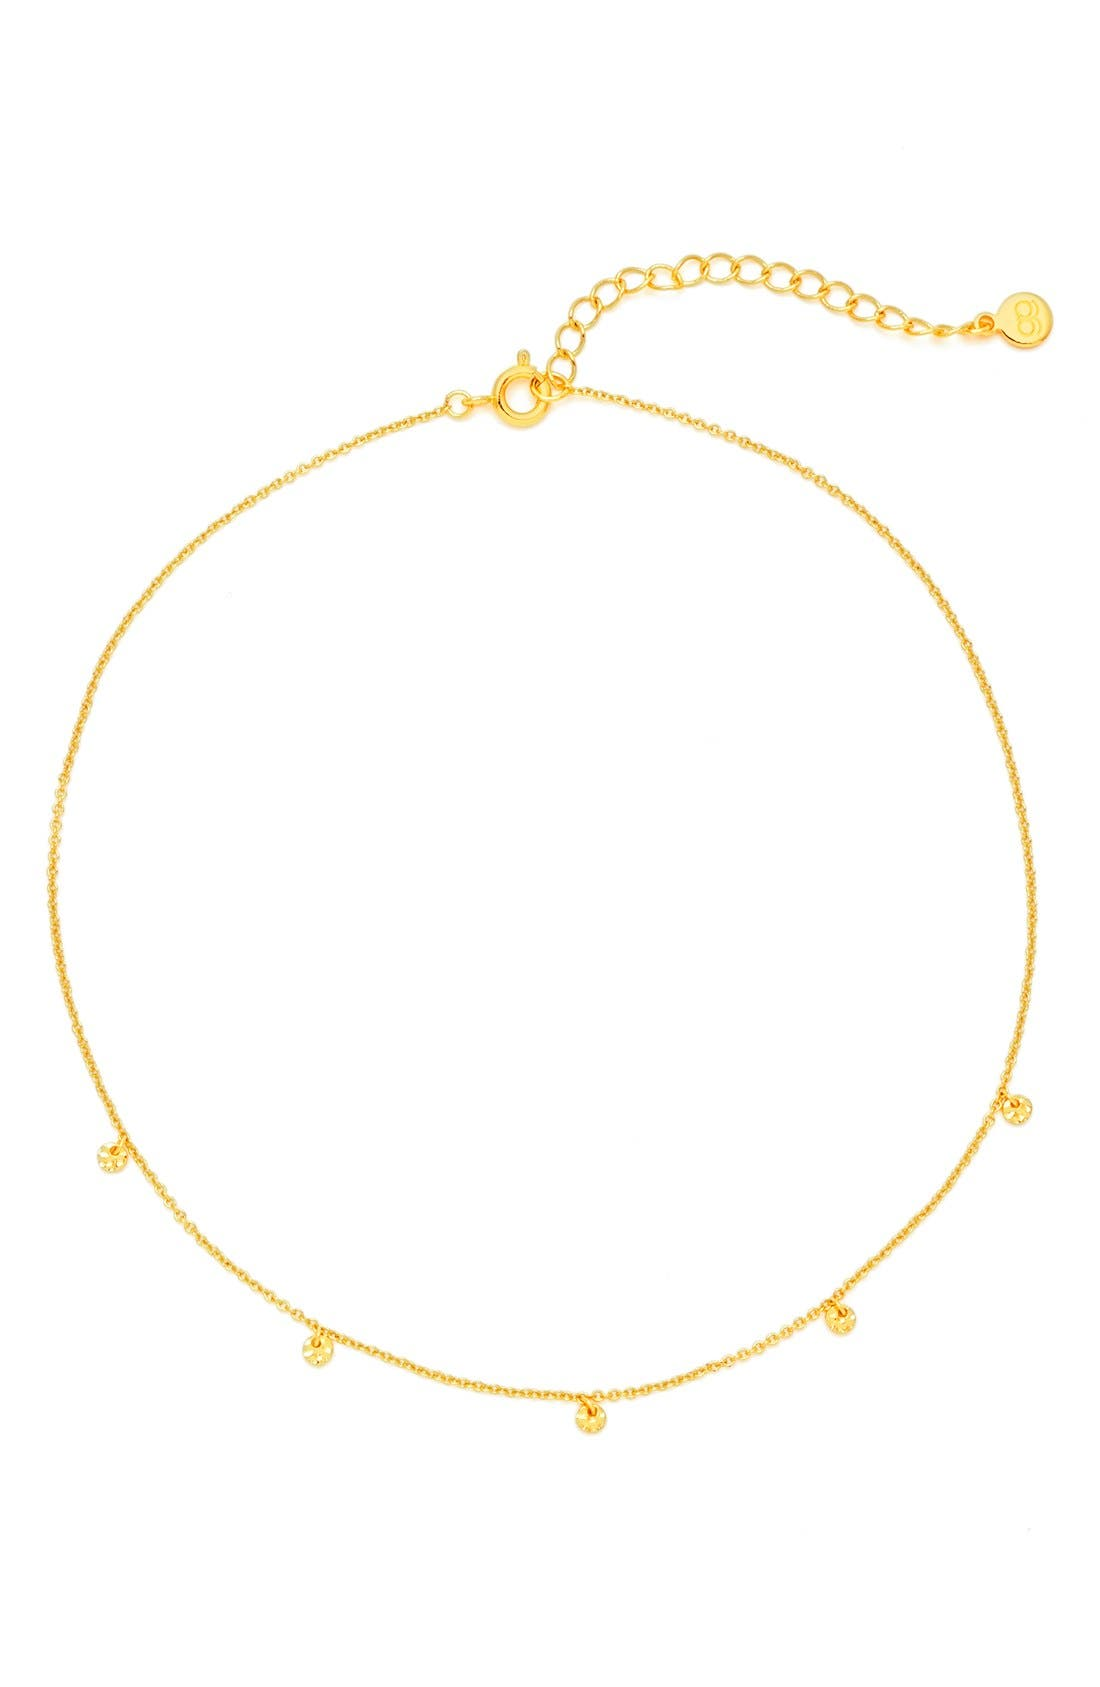 Charm Choker Necklace,                         Main,                         color, Gold